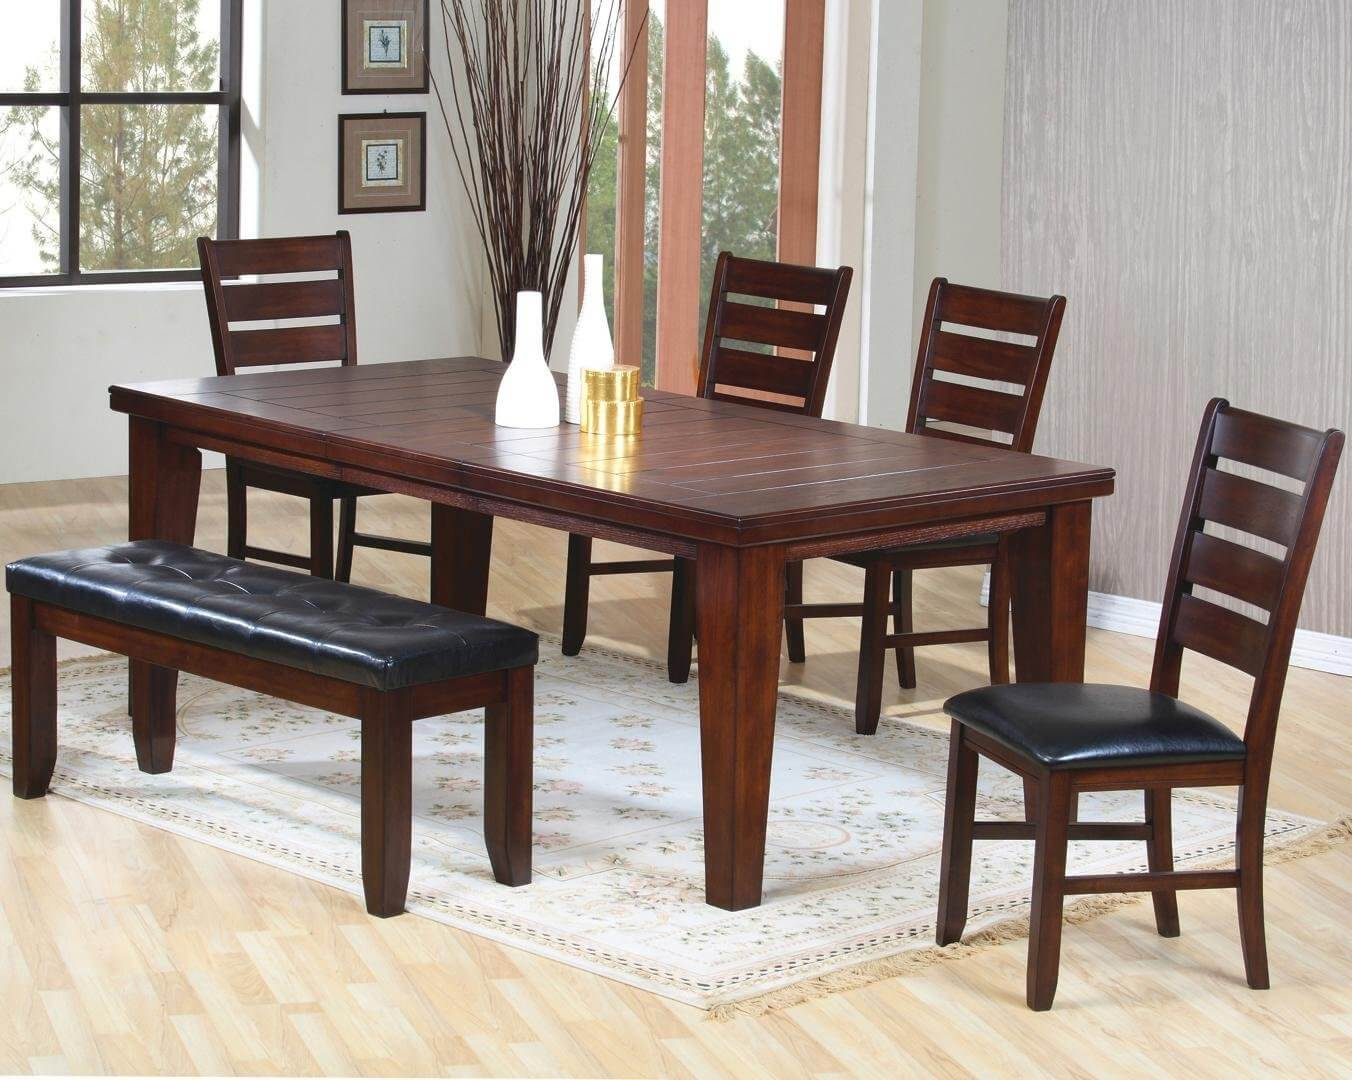 dining room sets bench seating chairs for kitchen table 26 Dining Room Furniture Sets with a Bench